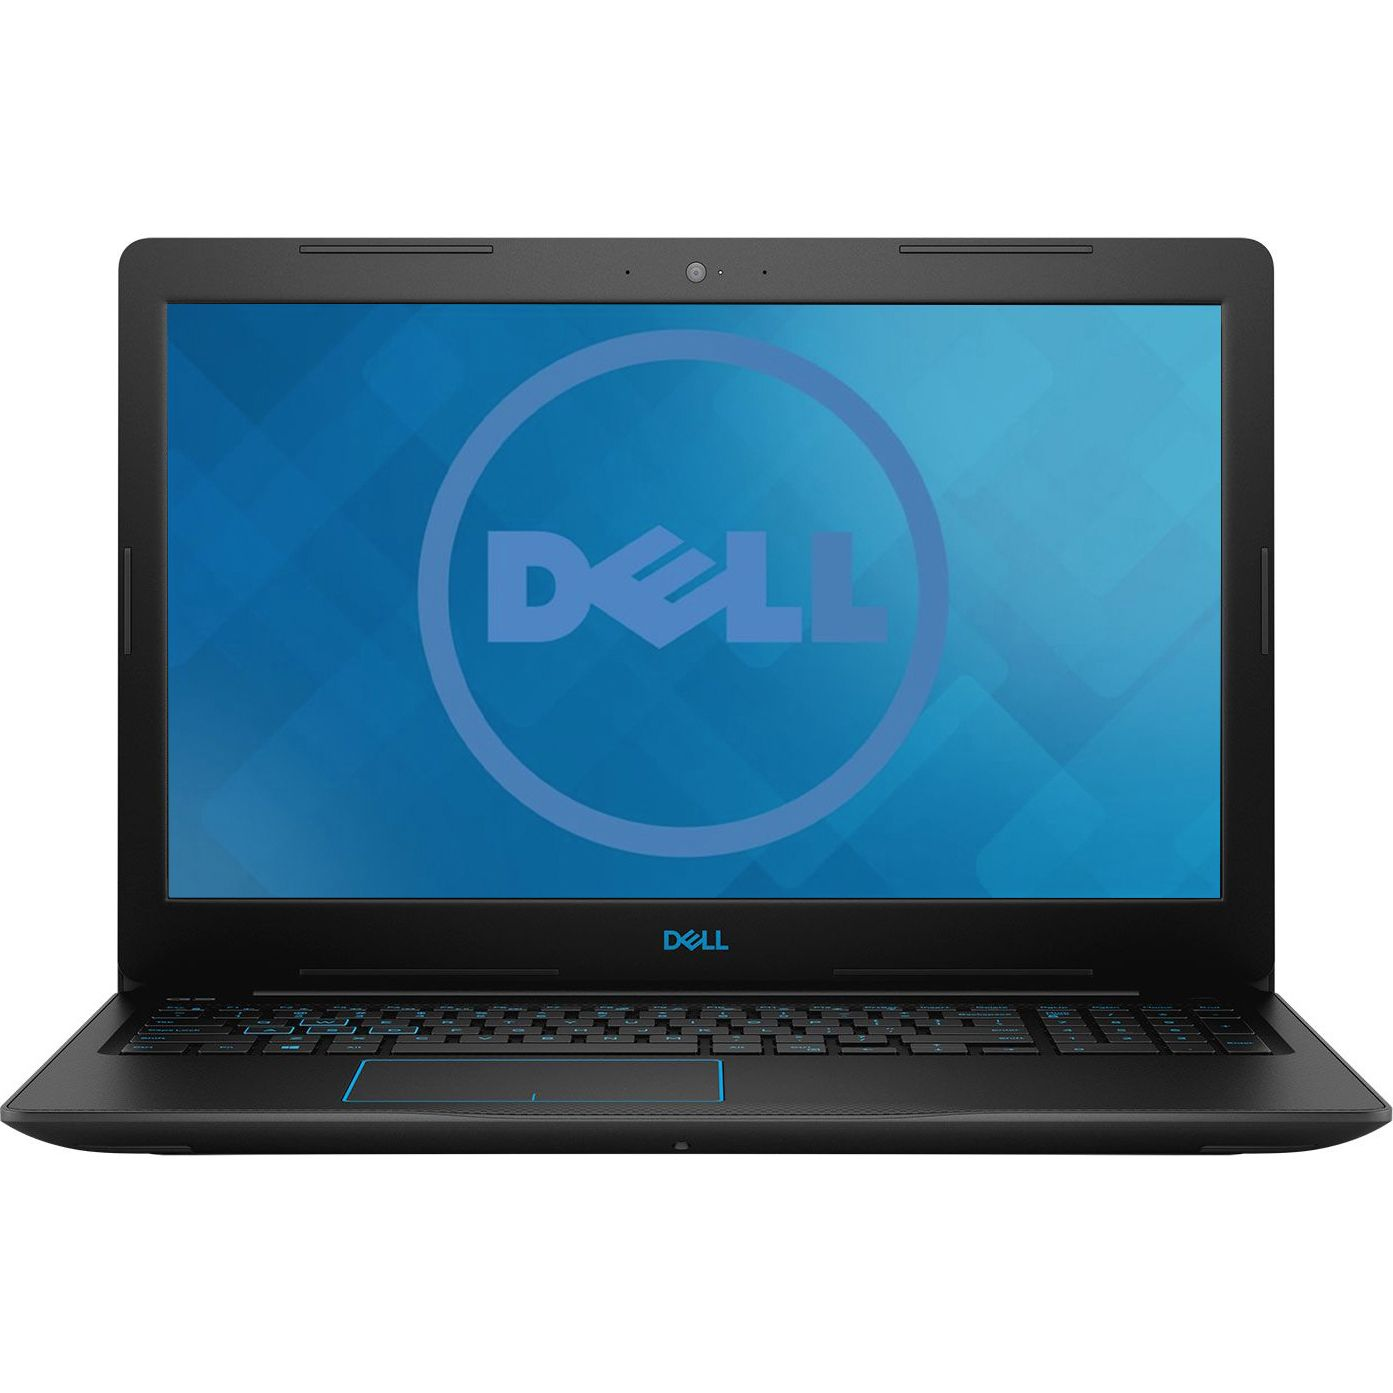 Notebook Dell G3 3579 15.6 Full HD Intel Core i7-8750H GTX 1050 Ti-4GB RAM 8GB HDD 1TB + SSD 128GB Windows 10 Home